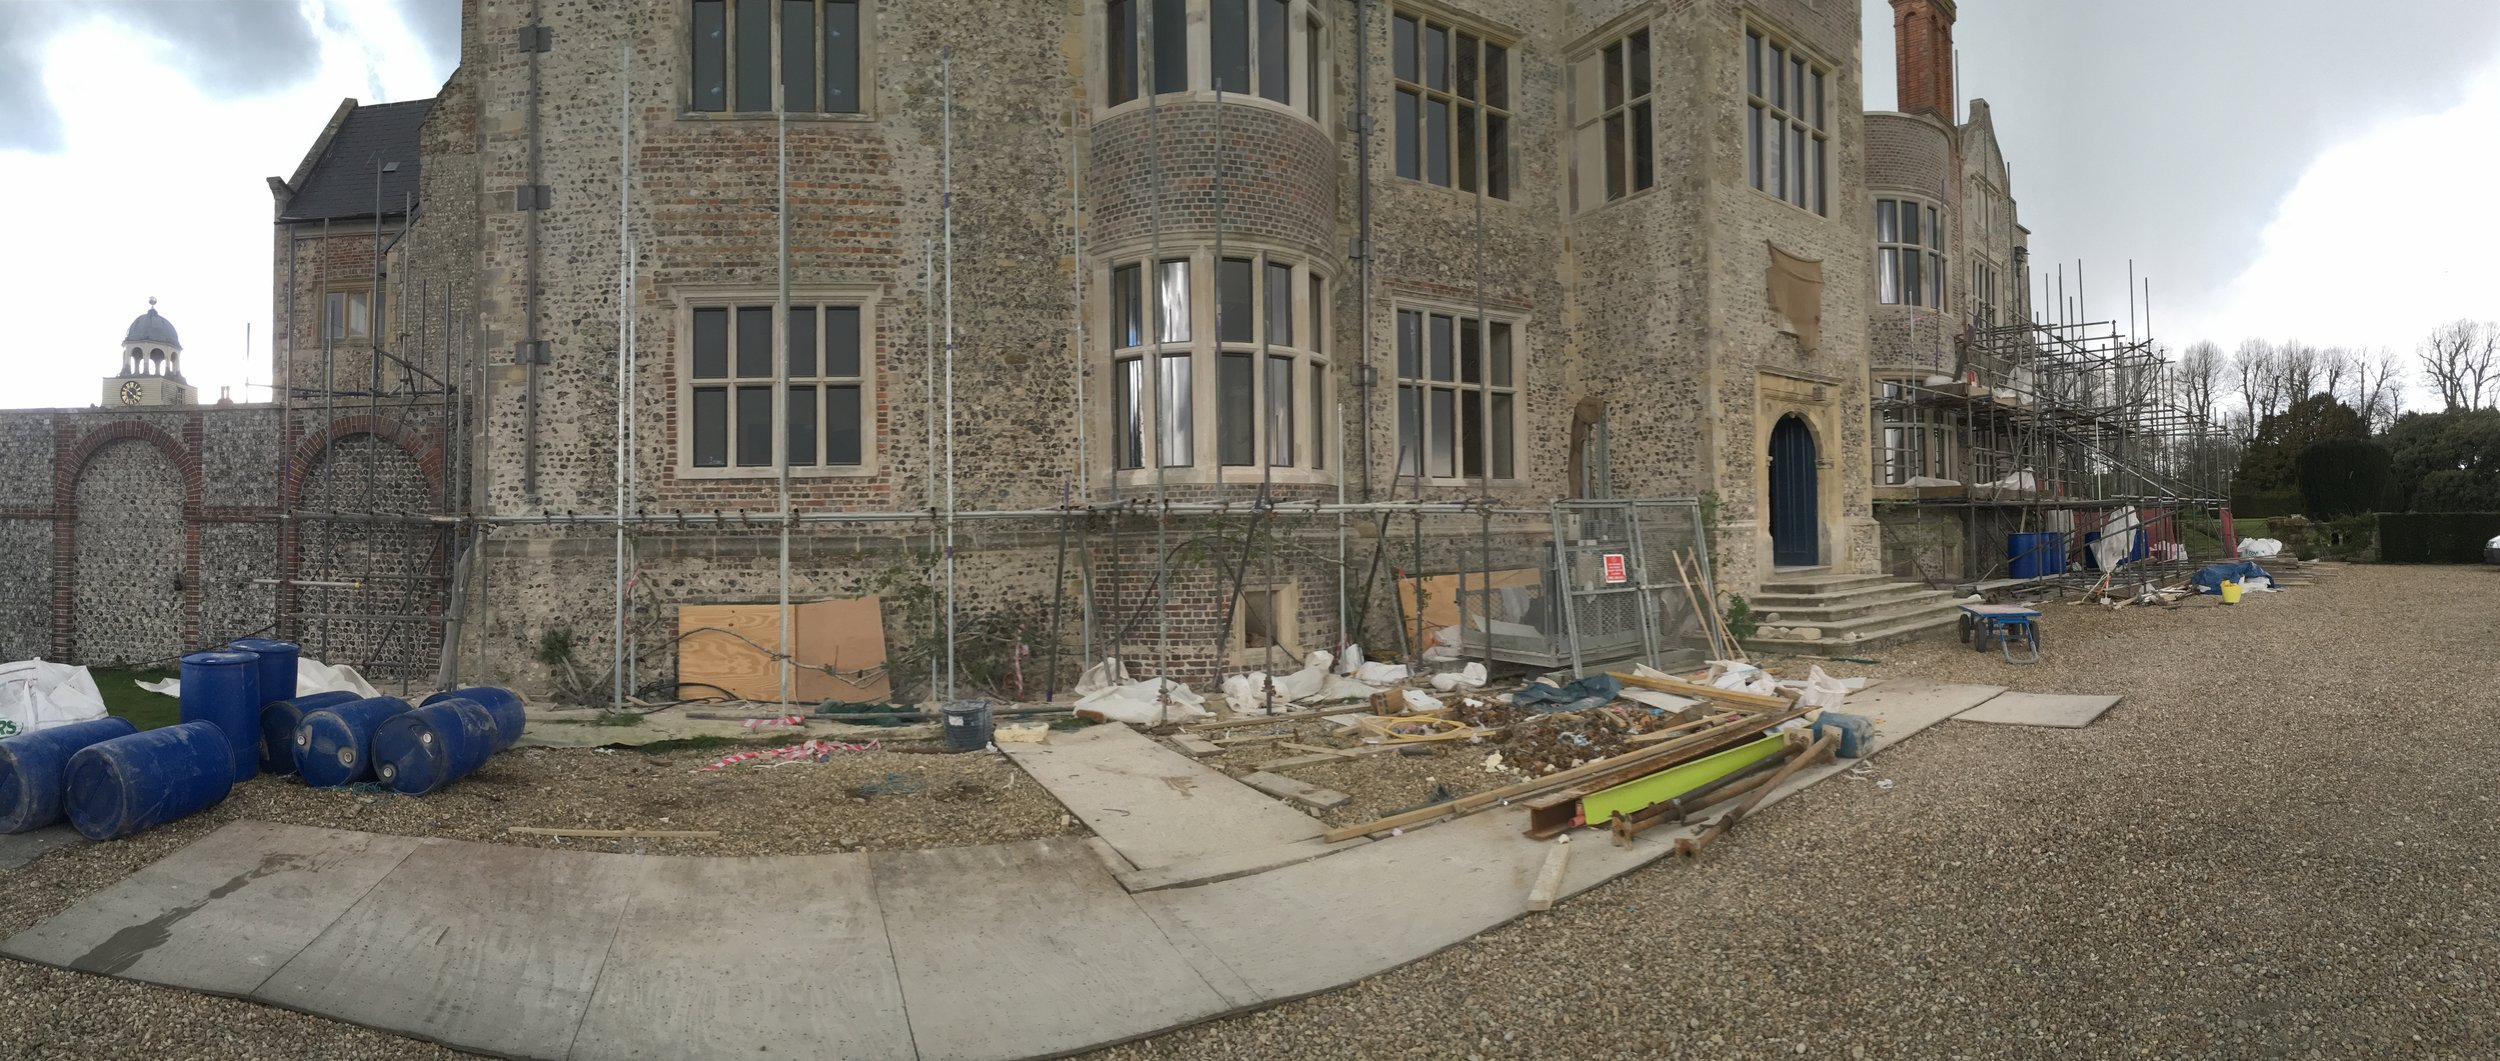 Glynde Place - Phase II - Post works, scaffolding coming down.jpg